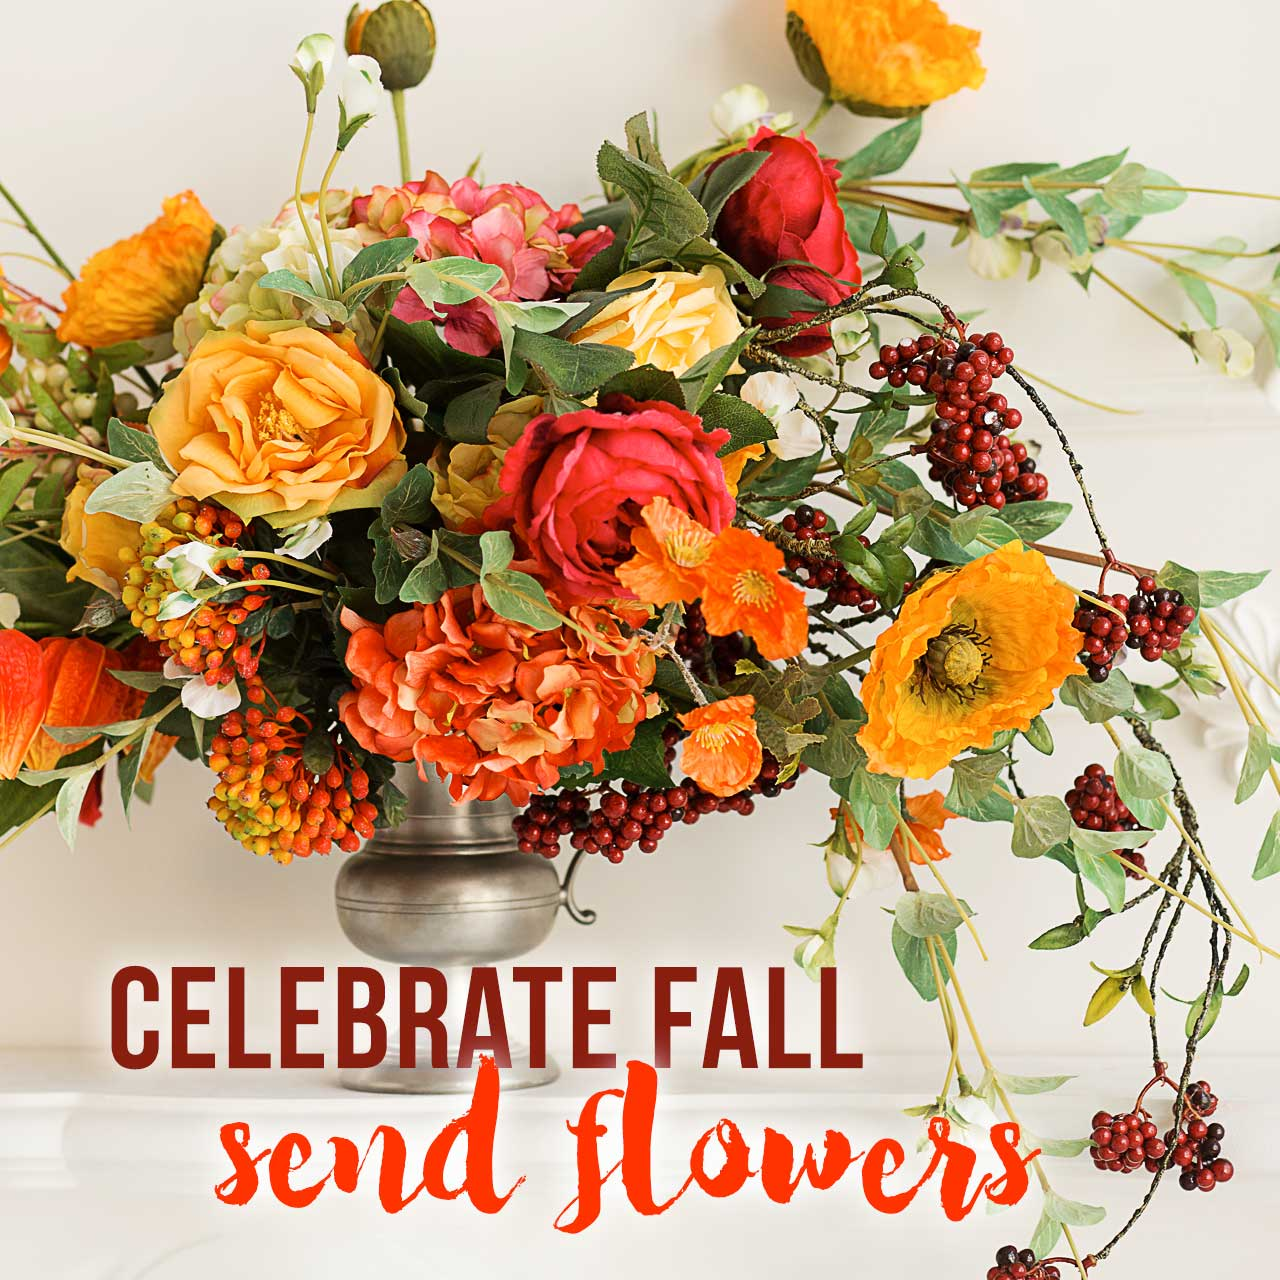 Celebrate Fall - send flowers